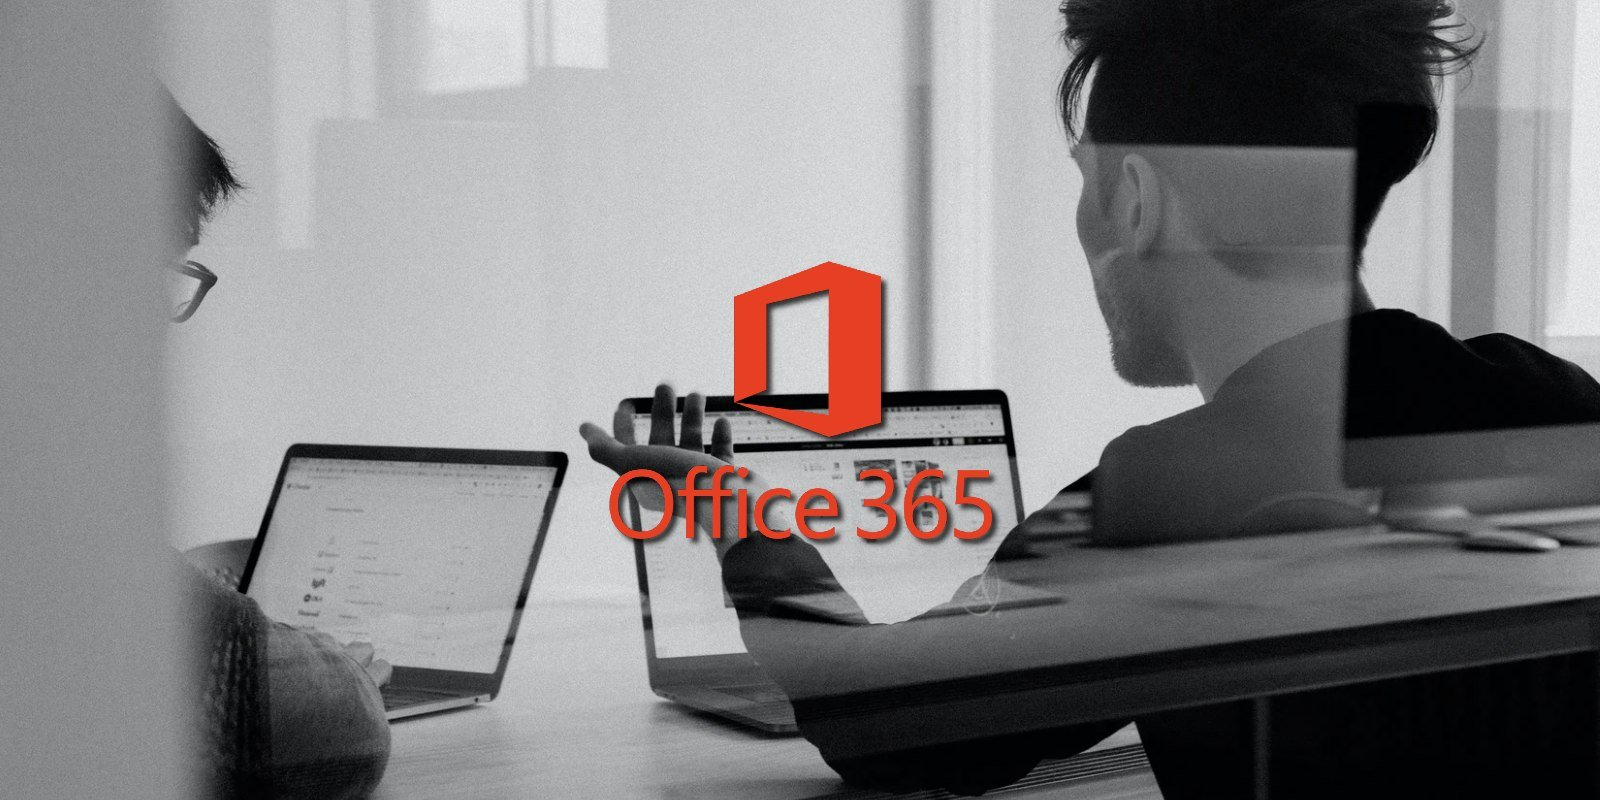 Microsoft will add secure preview for Office 365 quarantined emails